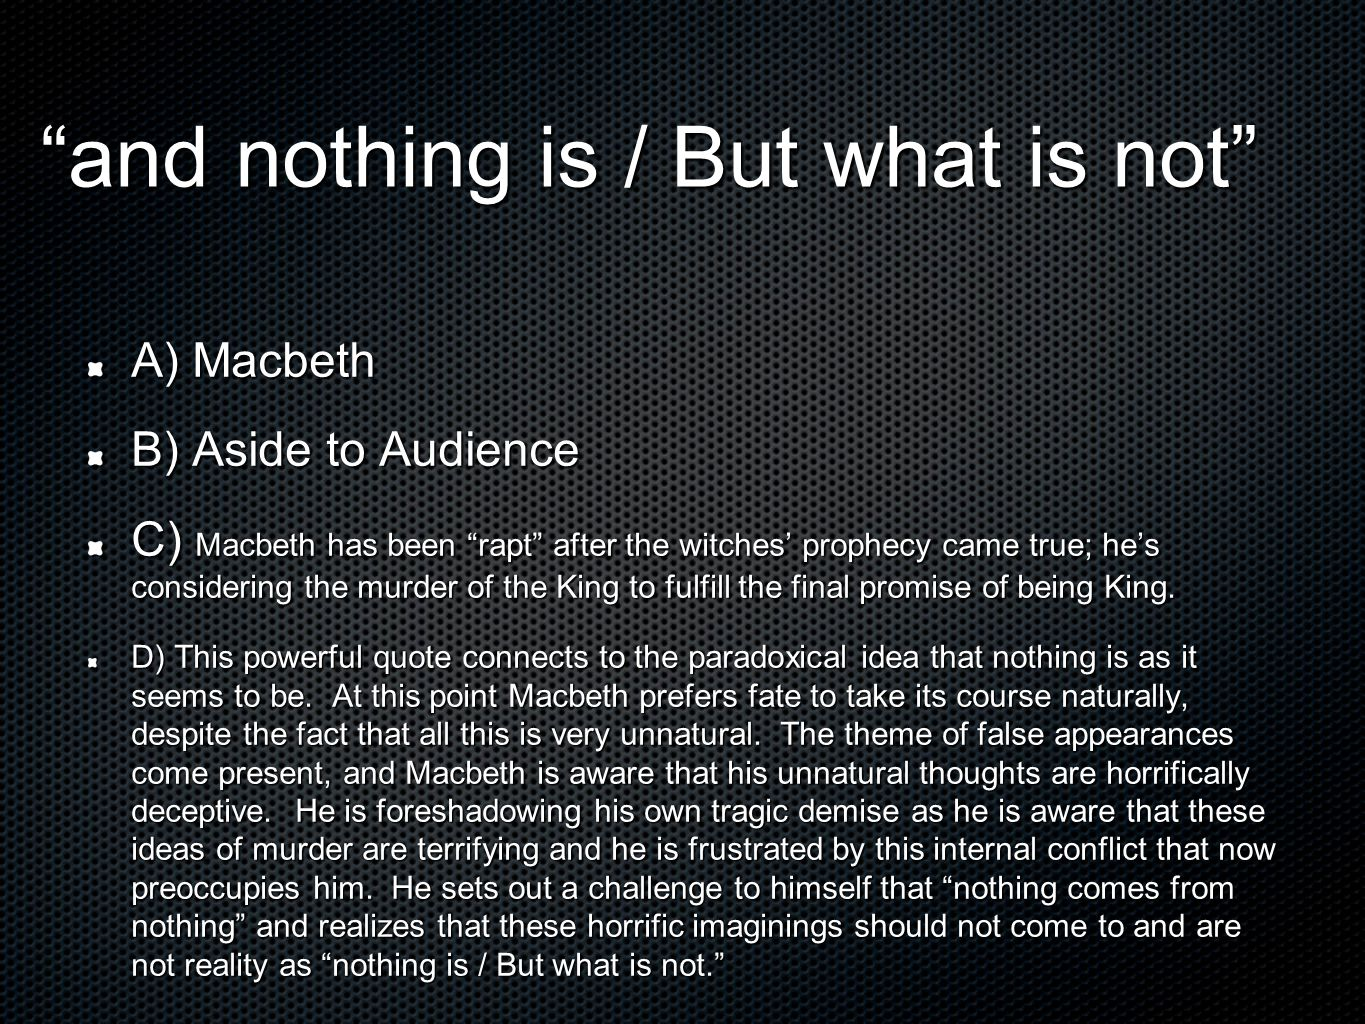 and nothing is / But what is not A) Macbeth B) Aside to Audience C) Macbeth has been rapt after the witches' prophecy came true; he's considering the murder of the King to fulfill the final promise of being King.